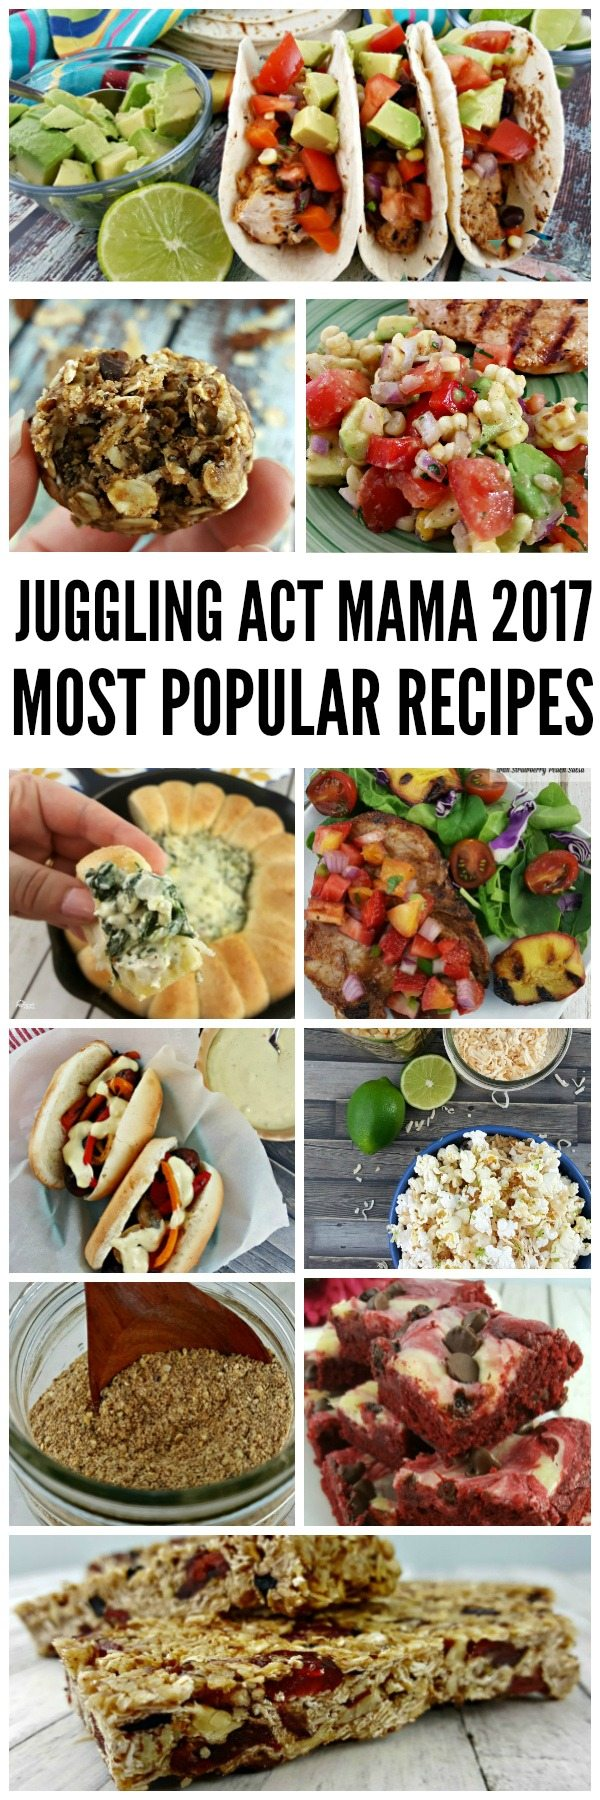 Most Popular Recipes of 2017 - Juggling Act Mama